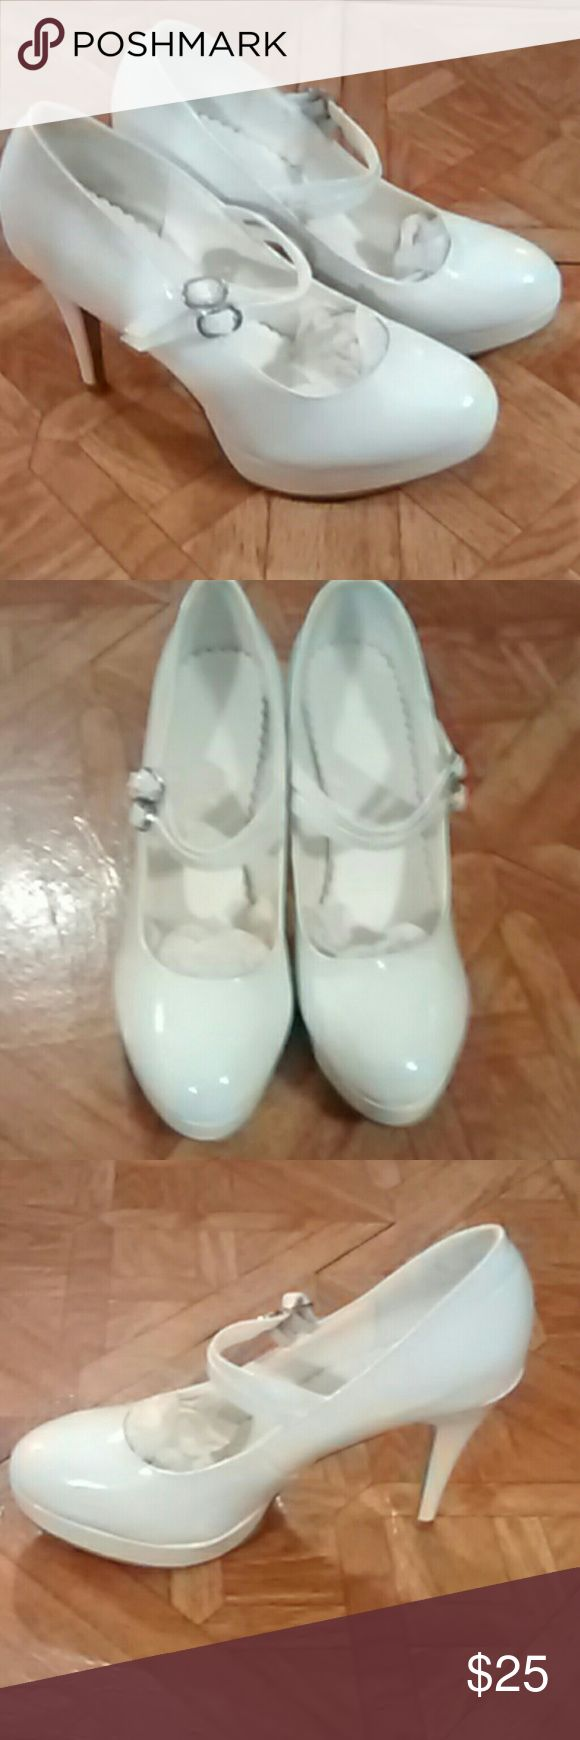 "White patent high heel shoes Brand new,never worn. Size 7.5 women's white patent shoes. With 4"" heel. Like new condition, always kept in their bag. unbranded Shoes Heels"